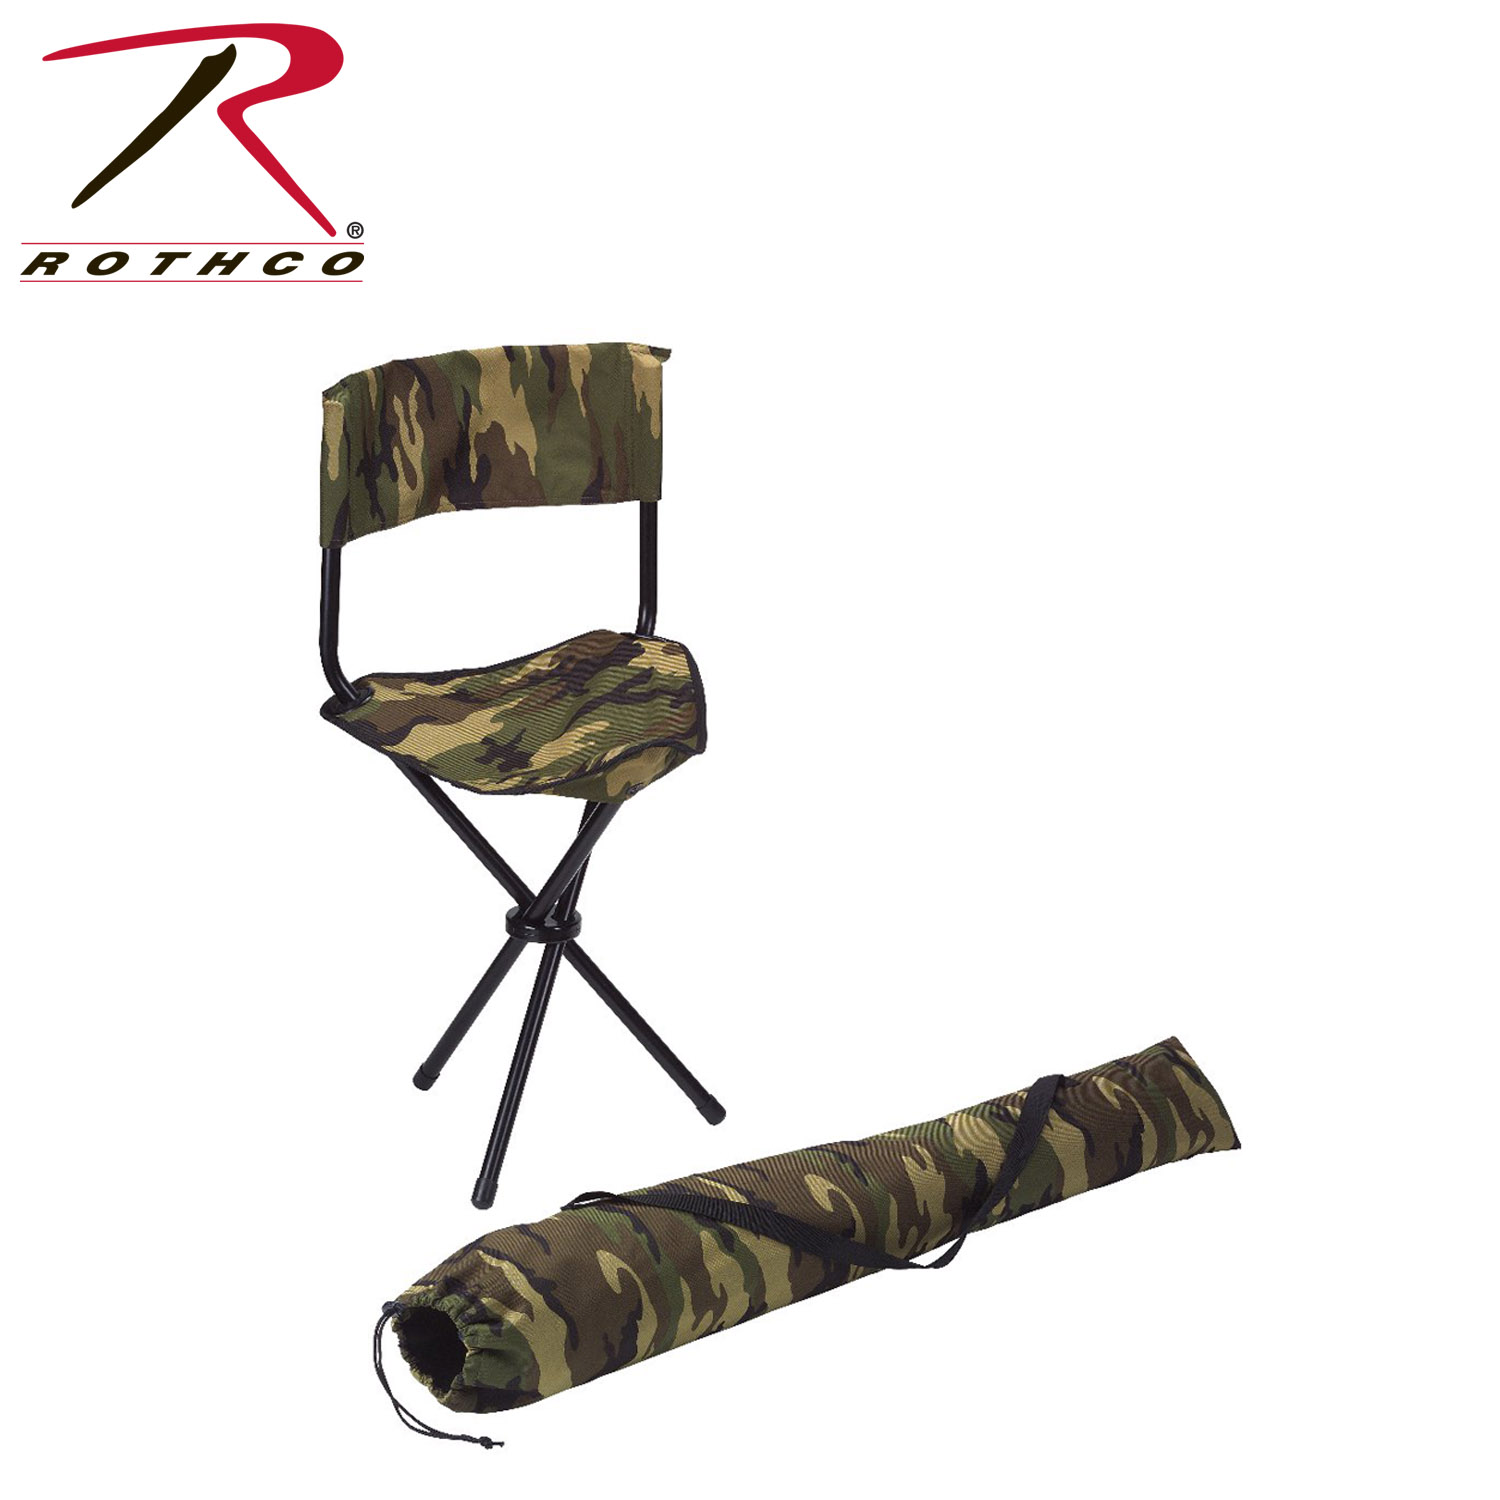 Rothco Collapsible Stool With back